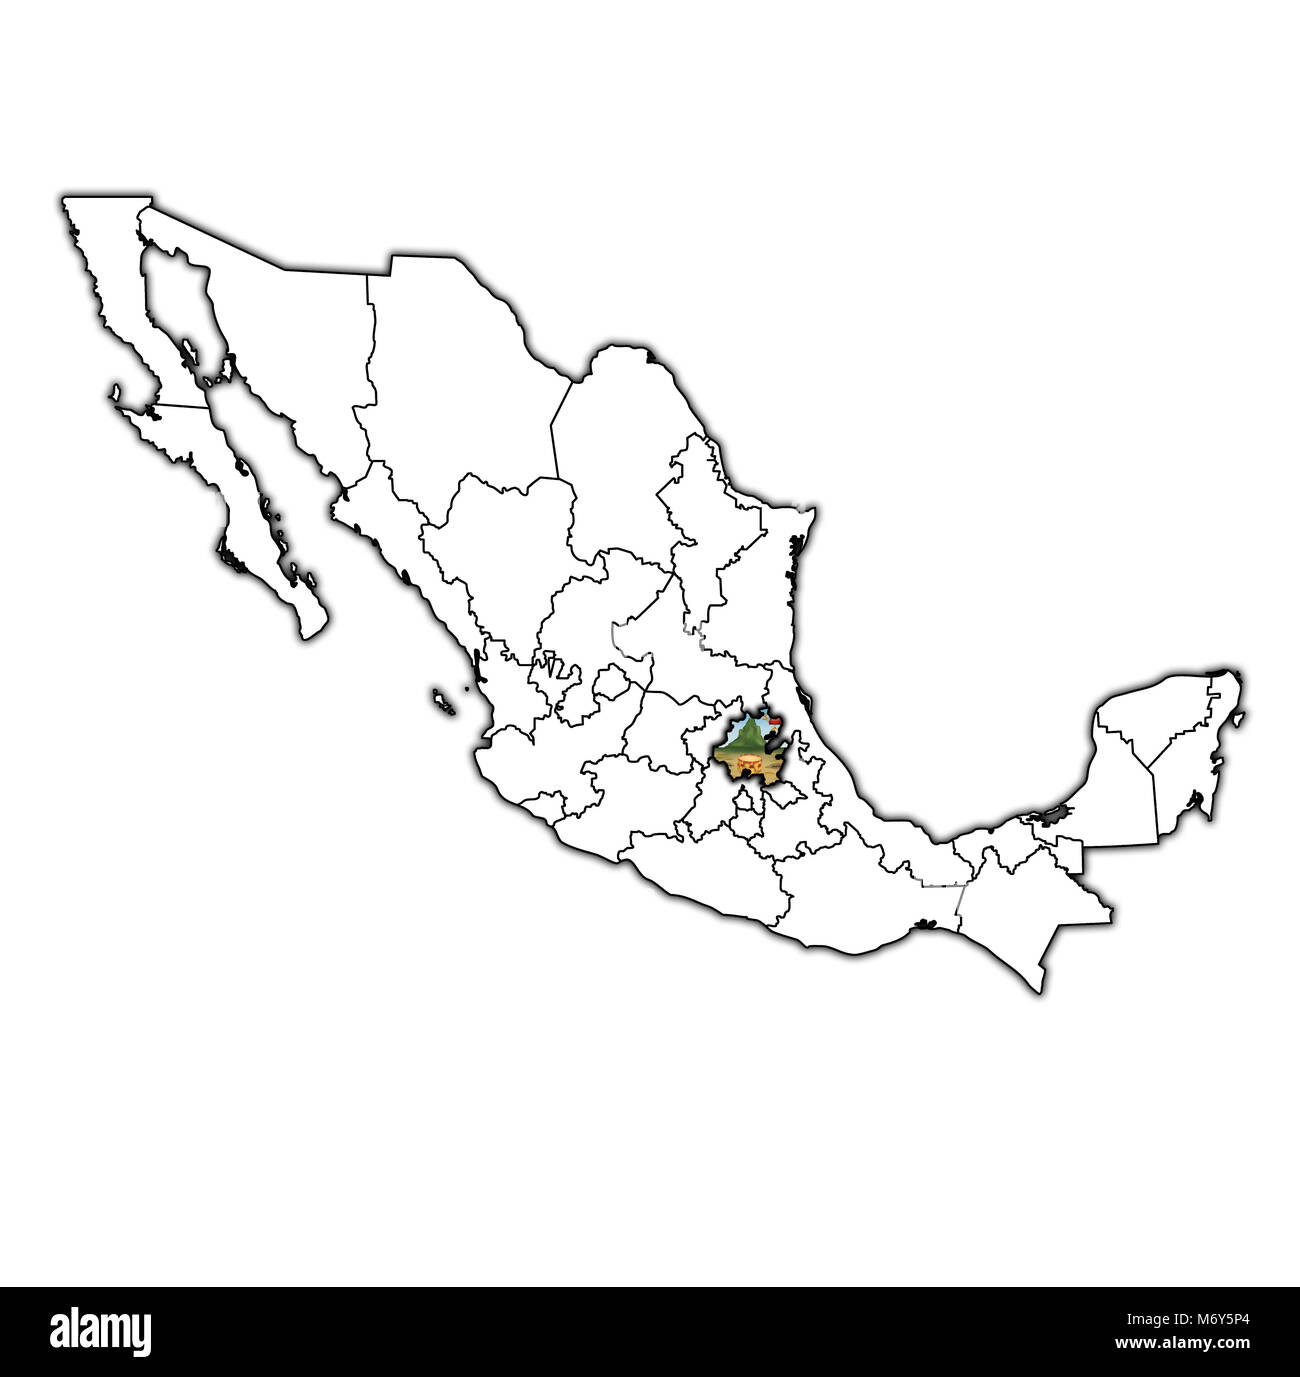 emblem of Hidalgo state on map with administrative divisions and borders of Mexico - Stock Image